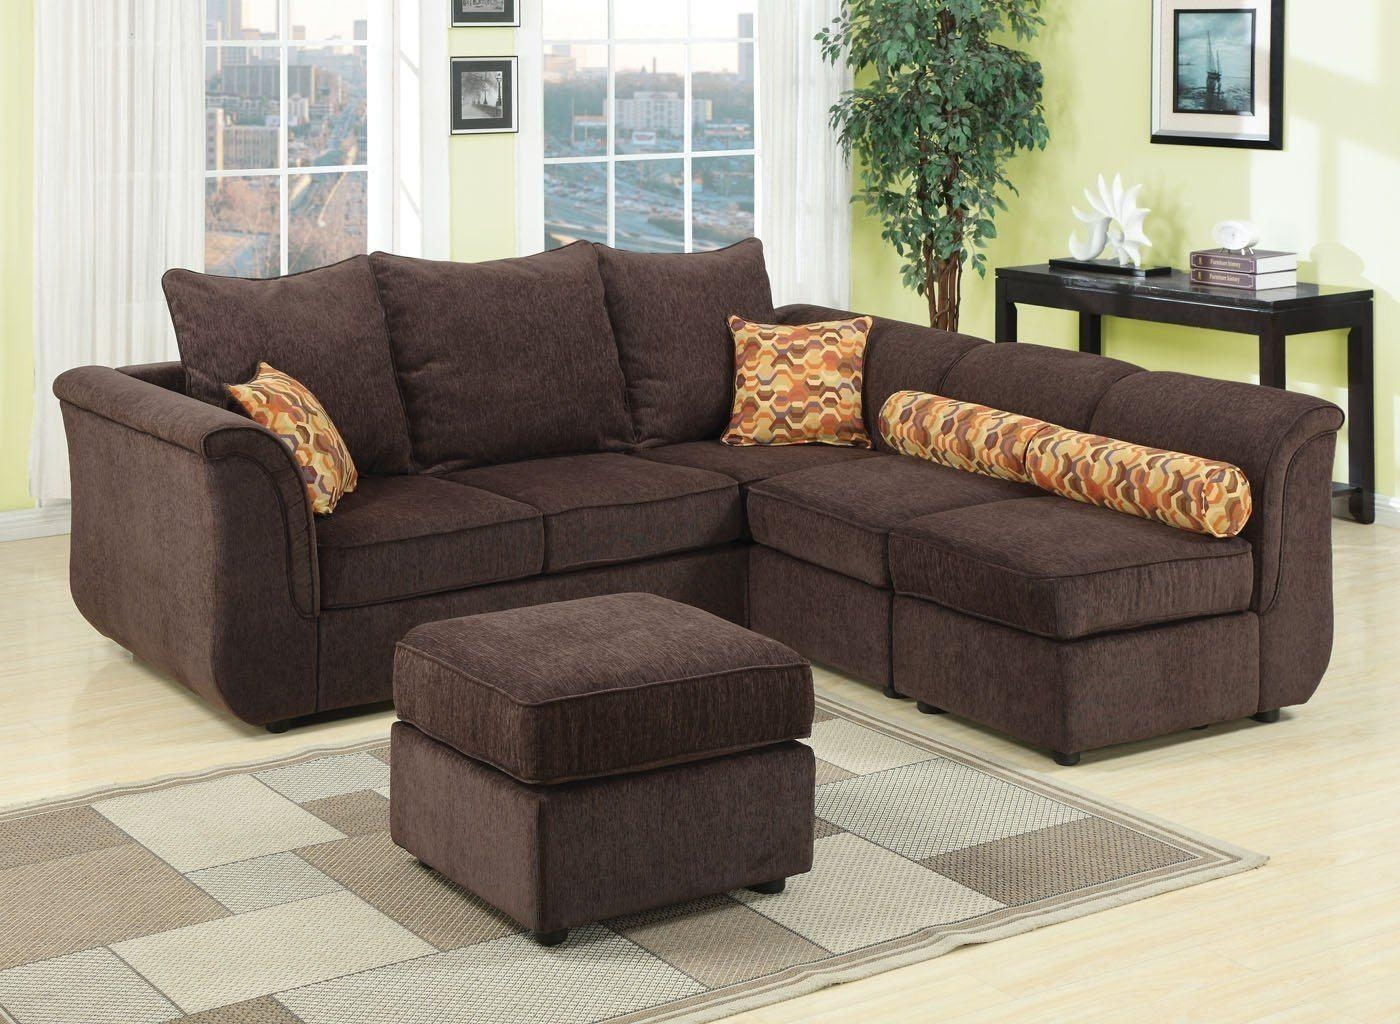 Chenille Sectional Sofa Contemporary Sectional Sofa And Ottoman Throughout Chenille Sectional Sofas With Chaise (Image 4 of 20)